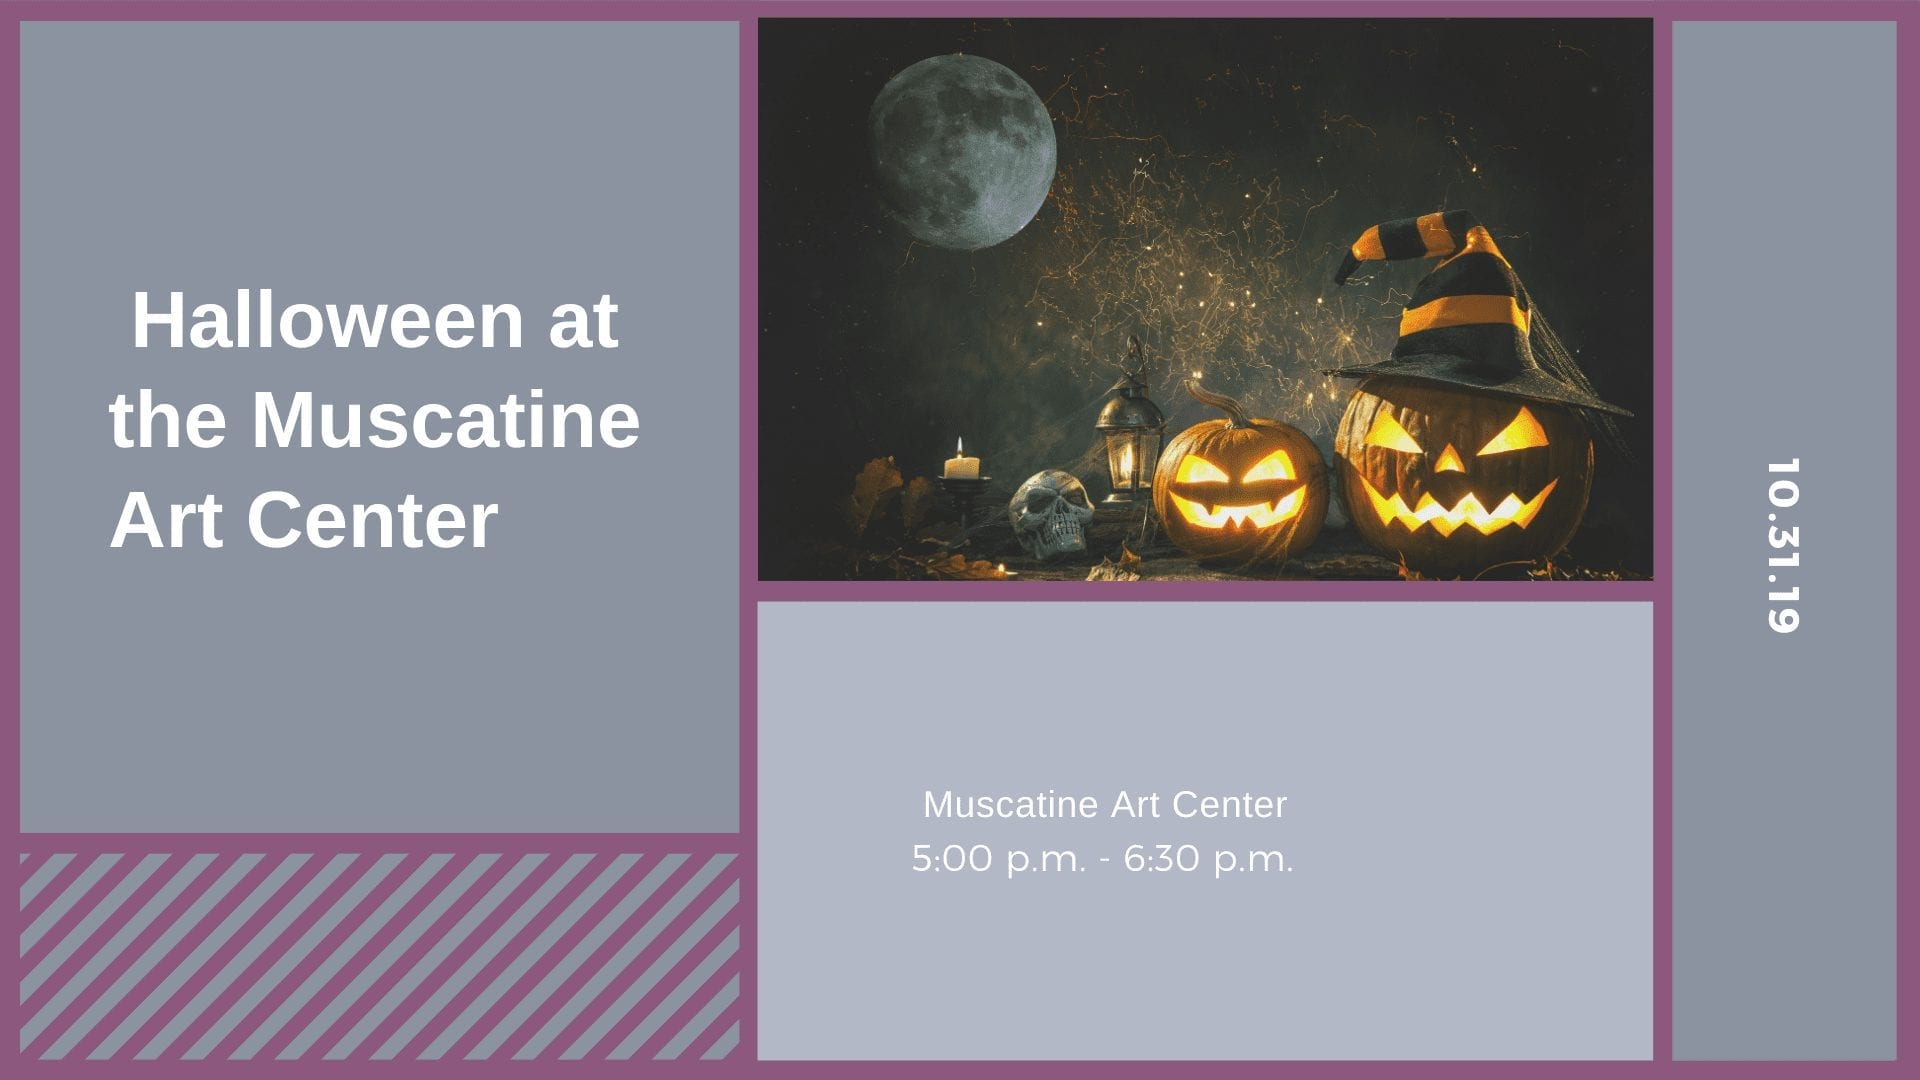 Halloween at the Muscatine Art Center